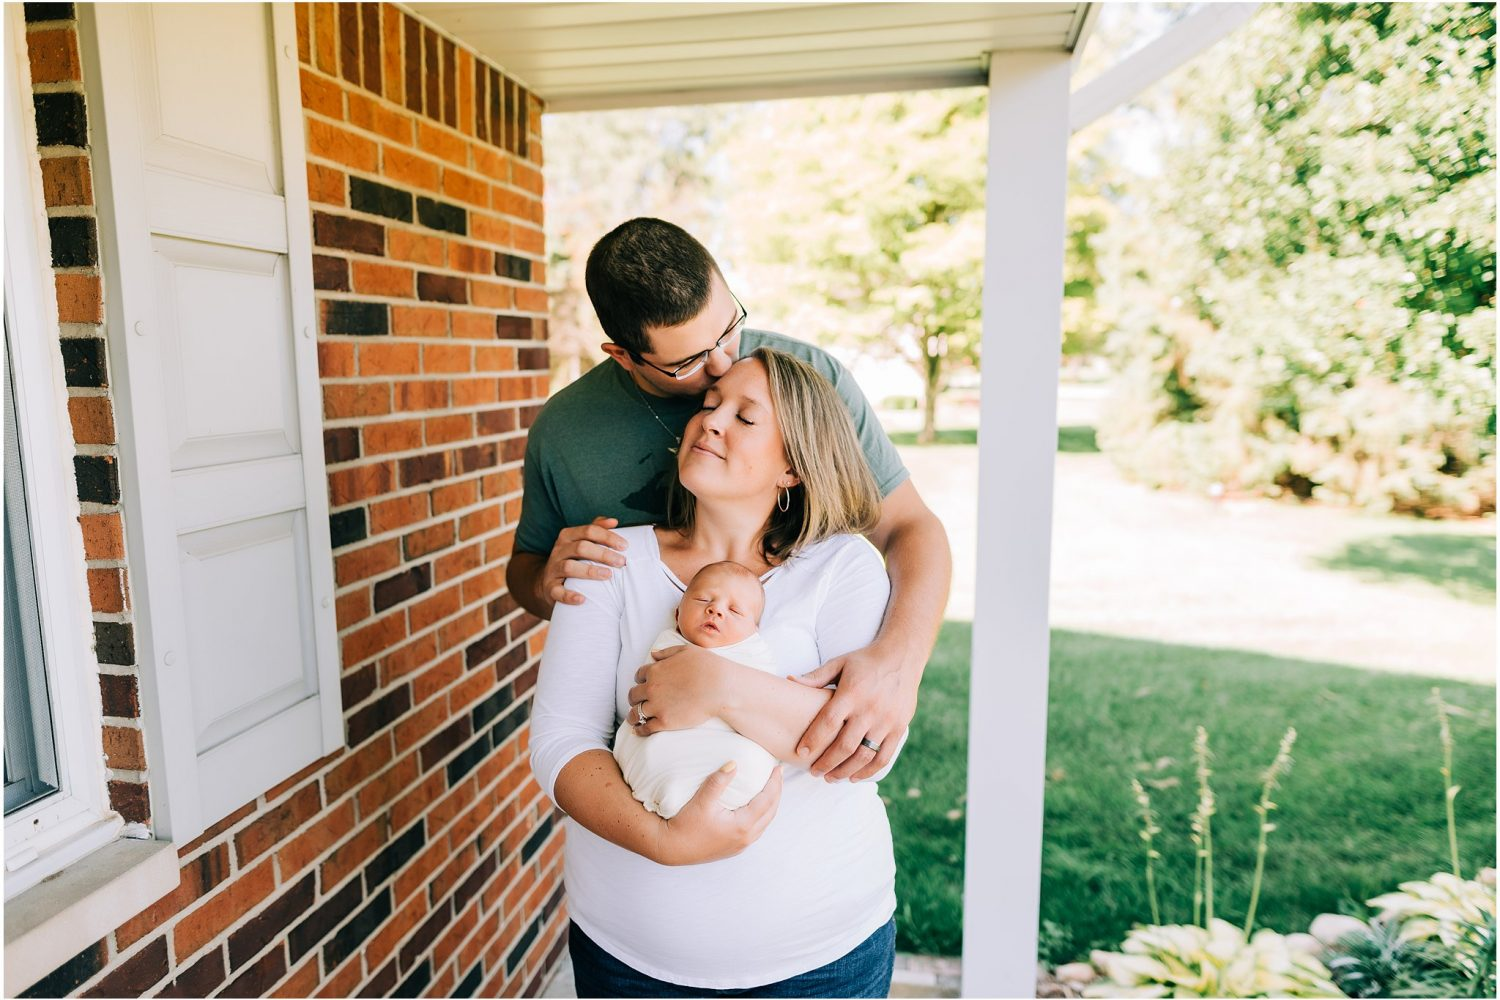 Family lifestyle newborn photo outside on the porch in Brighton